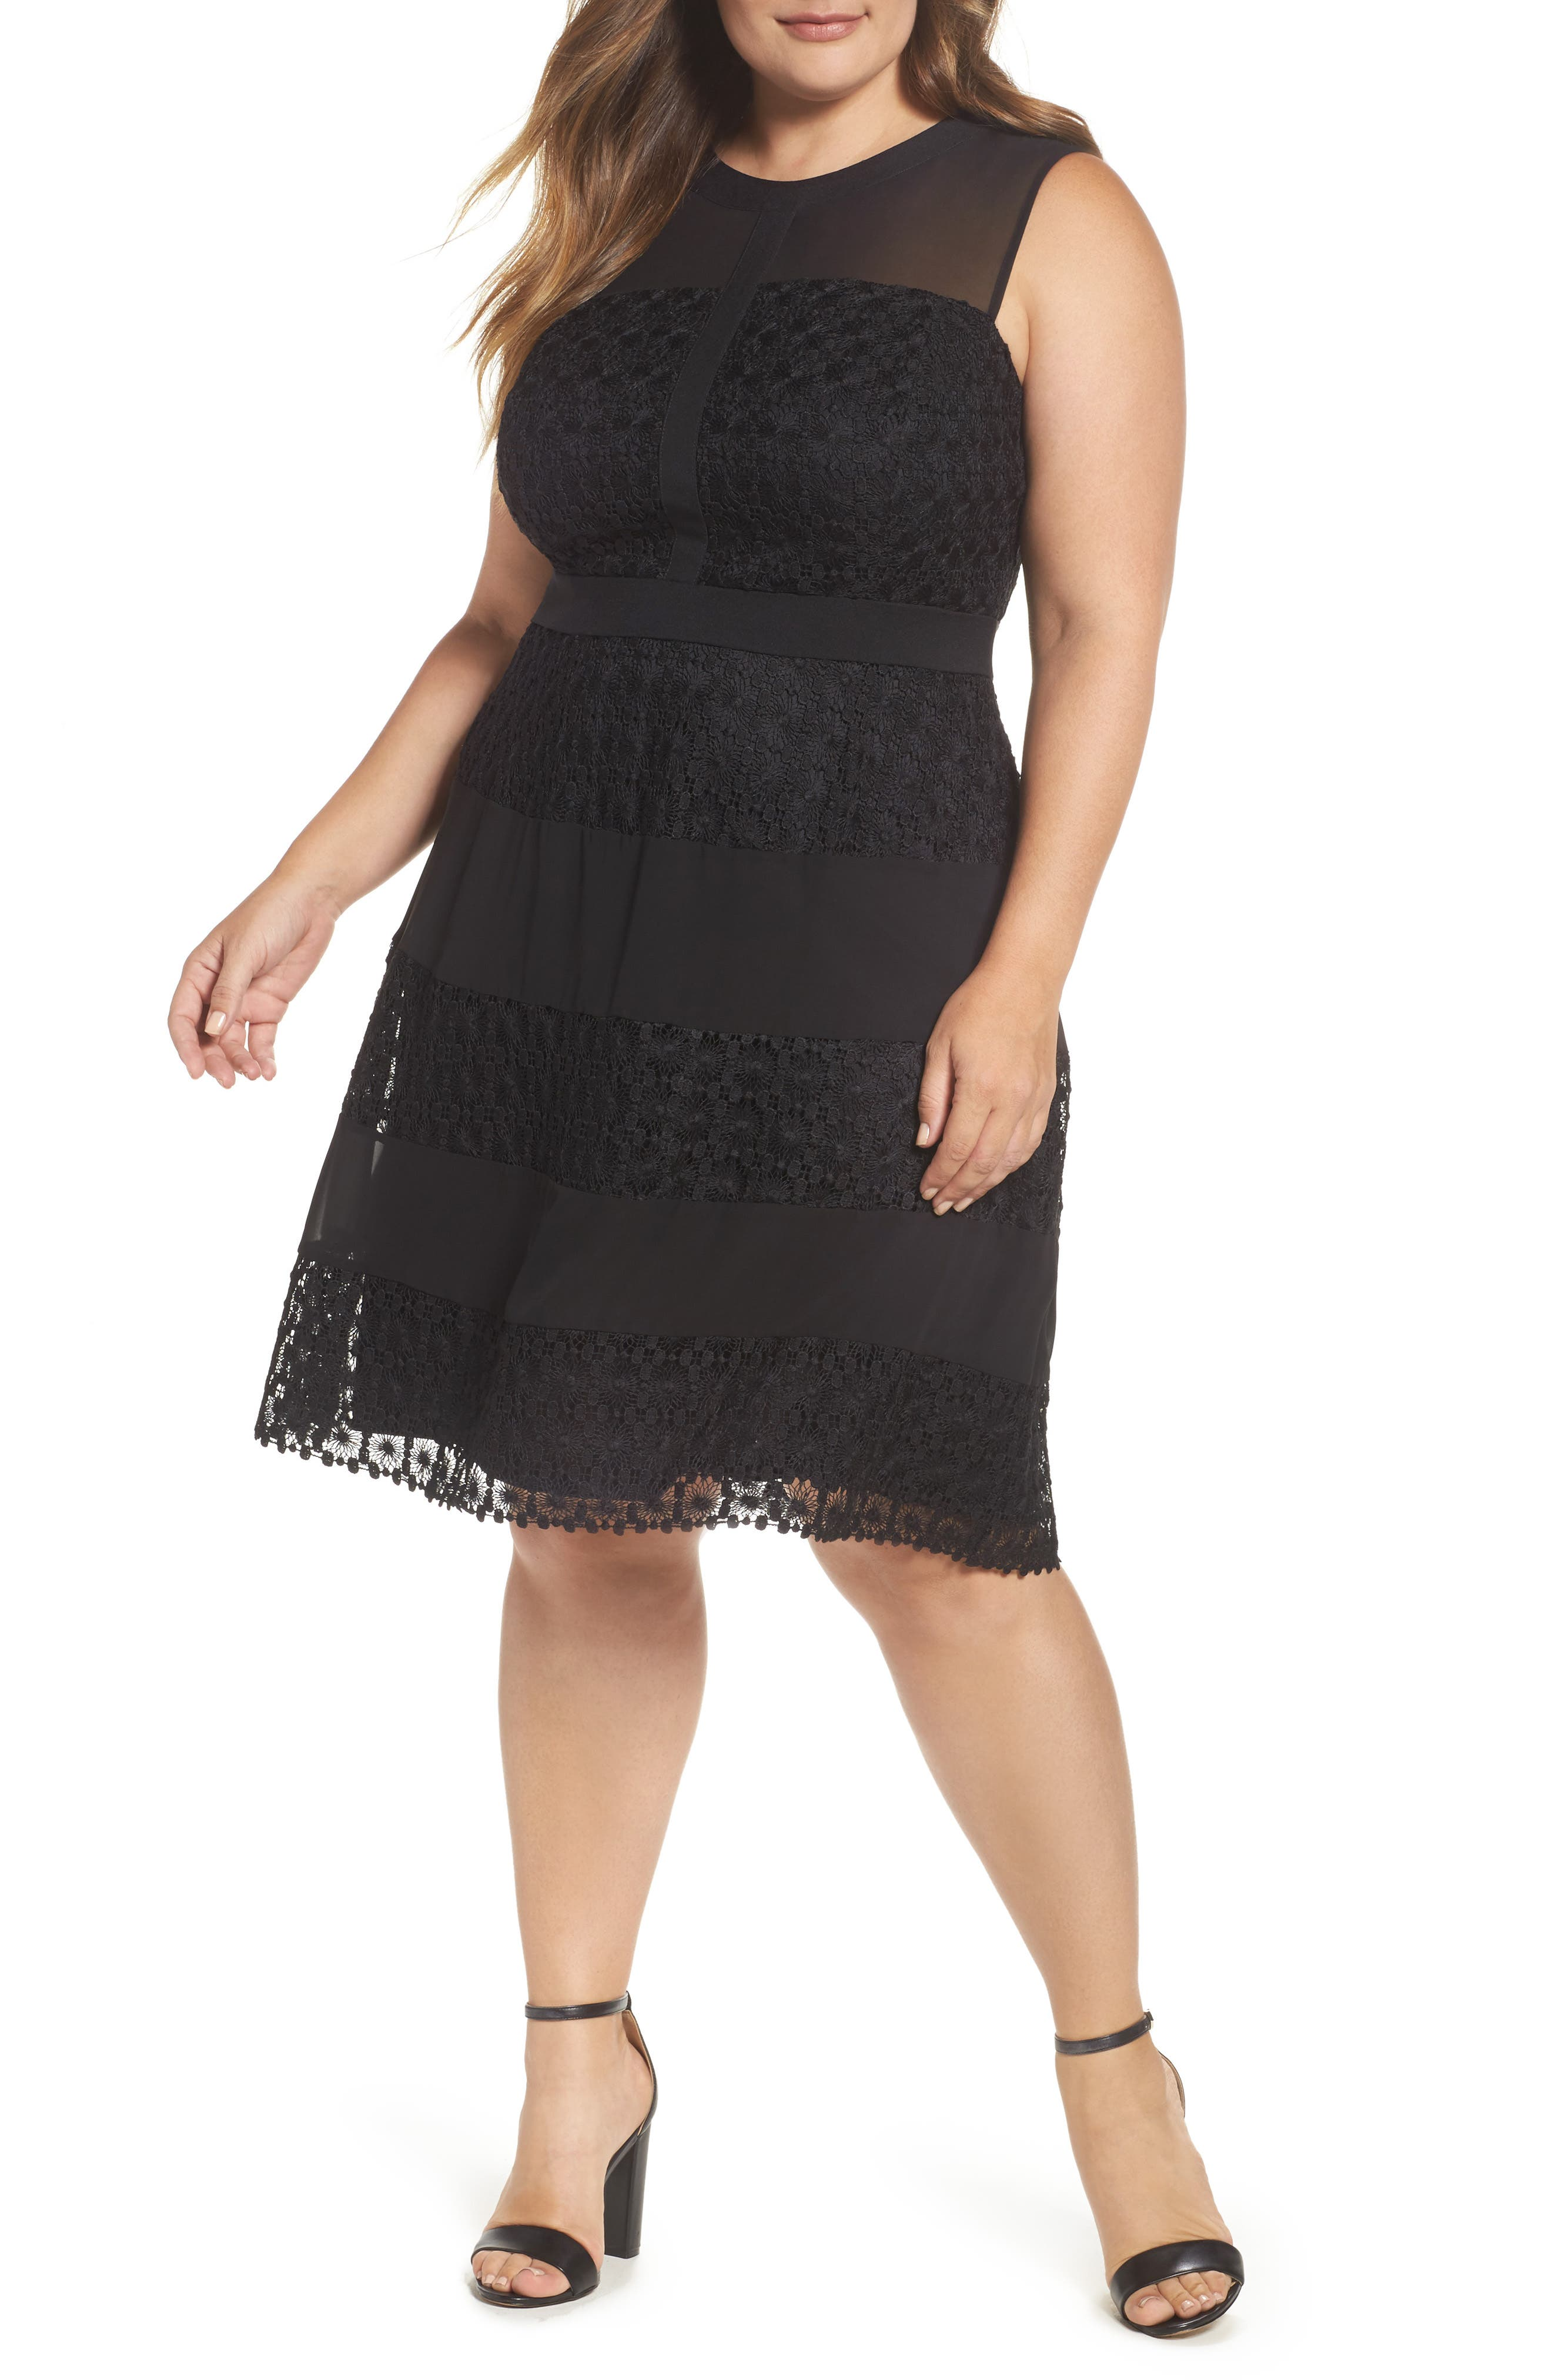 Alternate Image 1 Selected - London Time Geo Galaxy Lace Fit & Flare Dress (Plus Size)